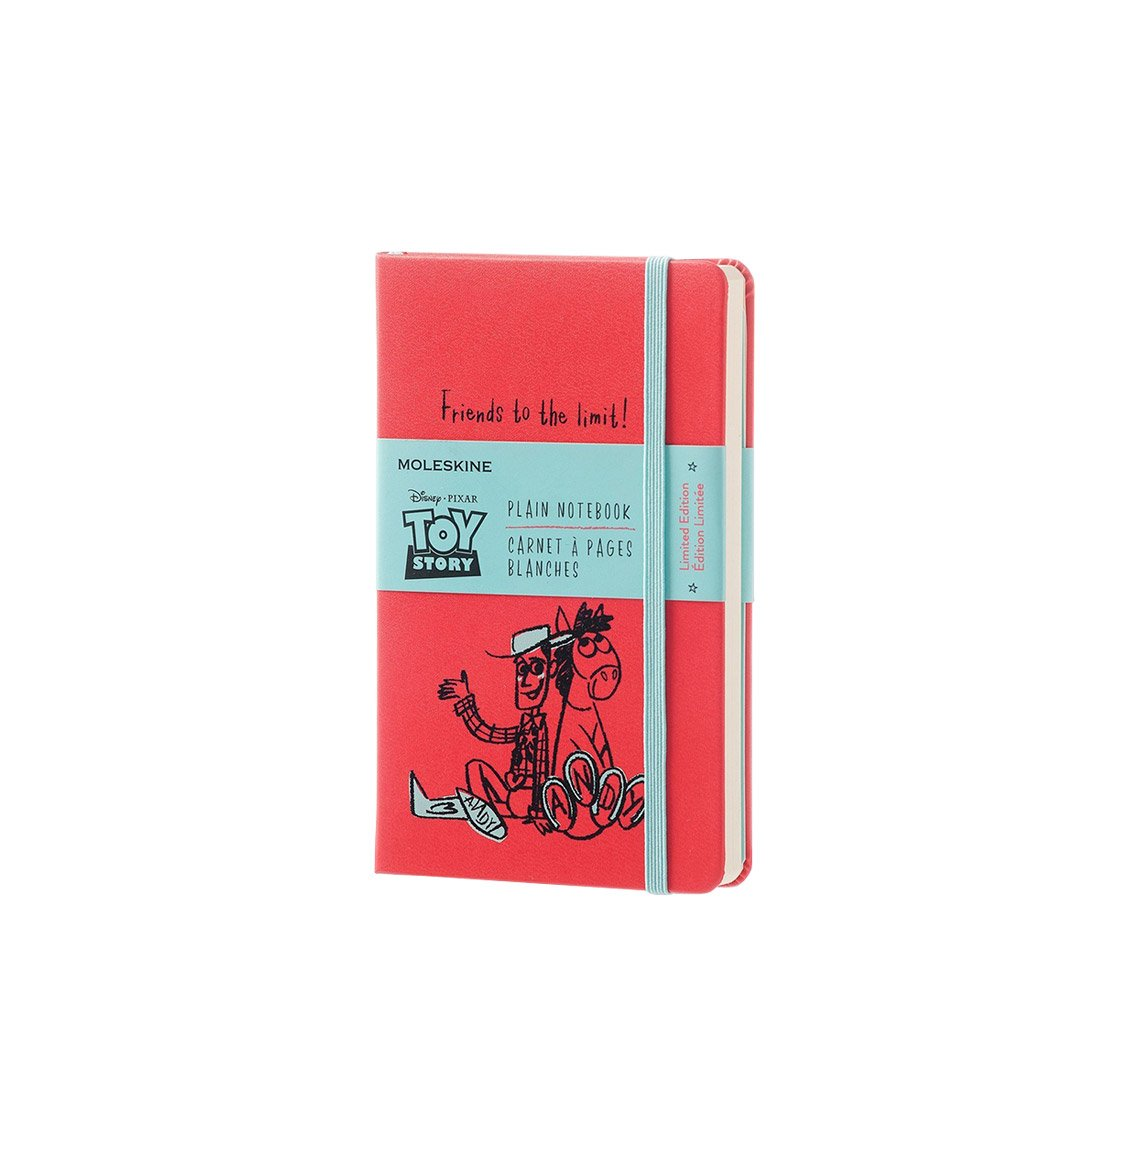 Moleskine Toy Story Limited Edition Pocket Plain Notebook Geranium Red